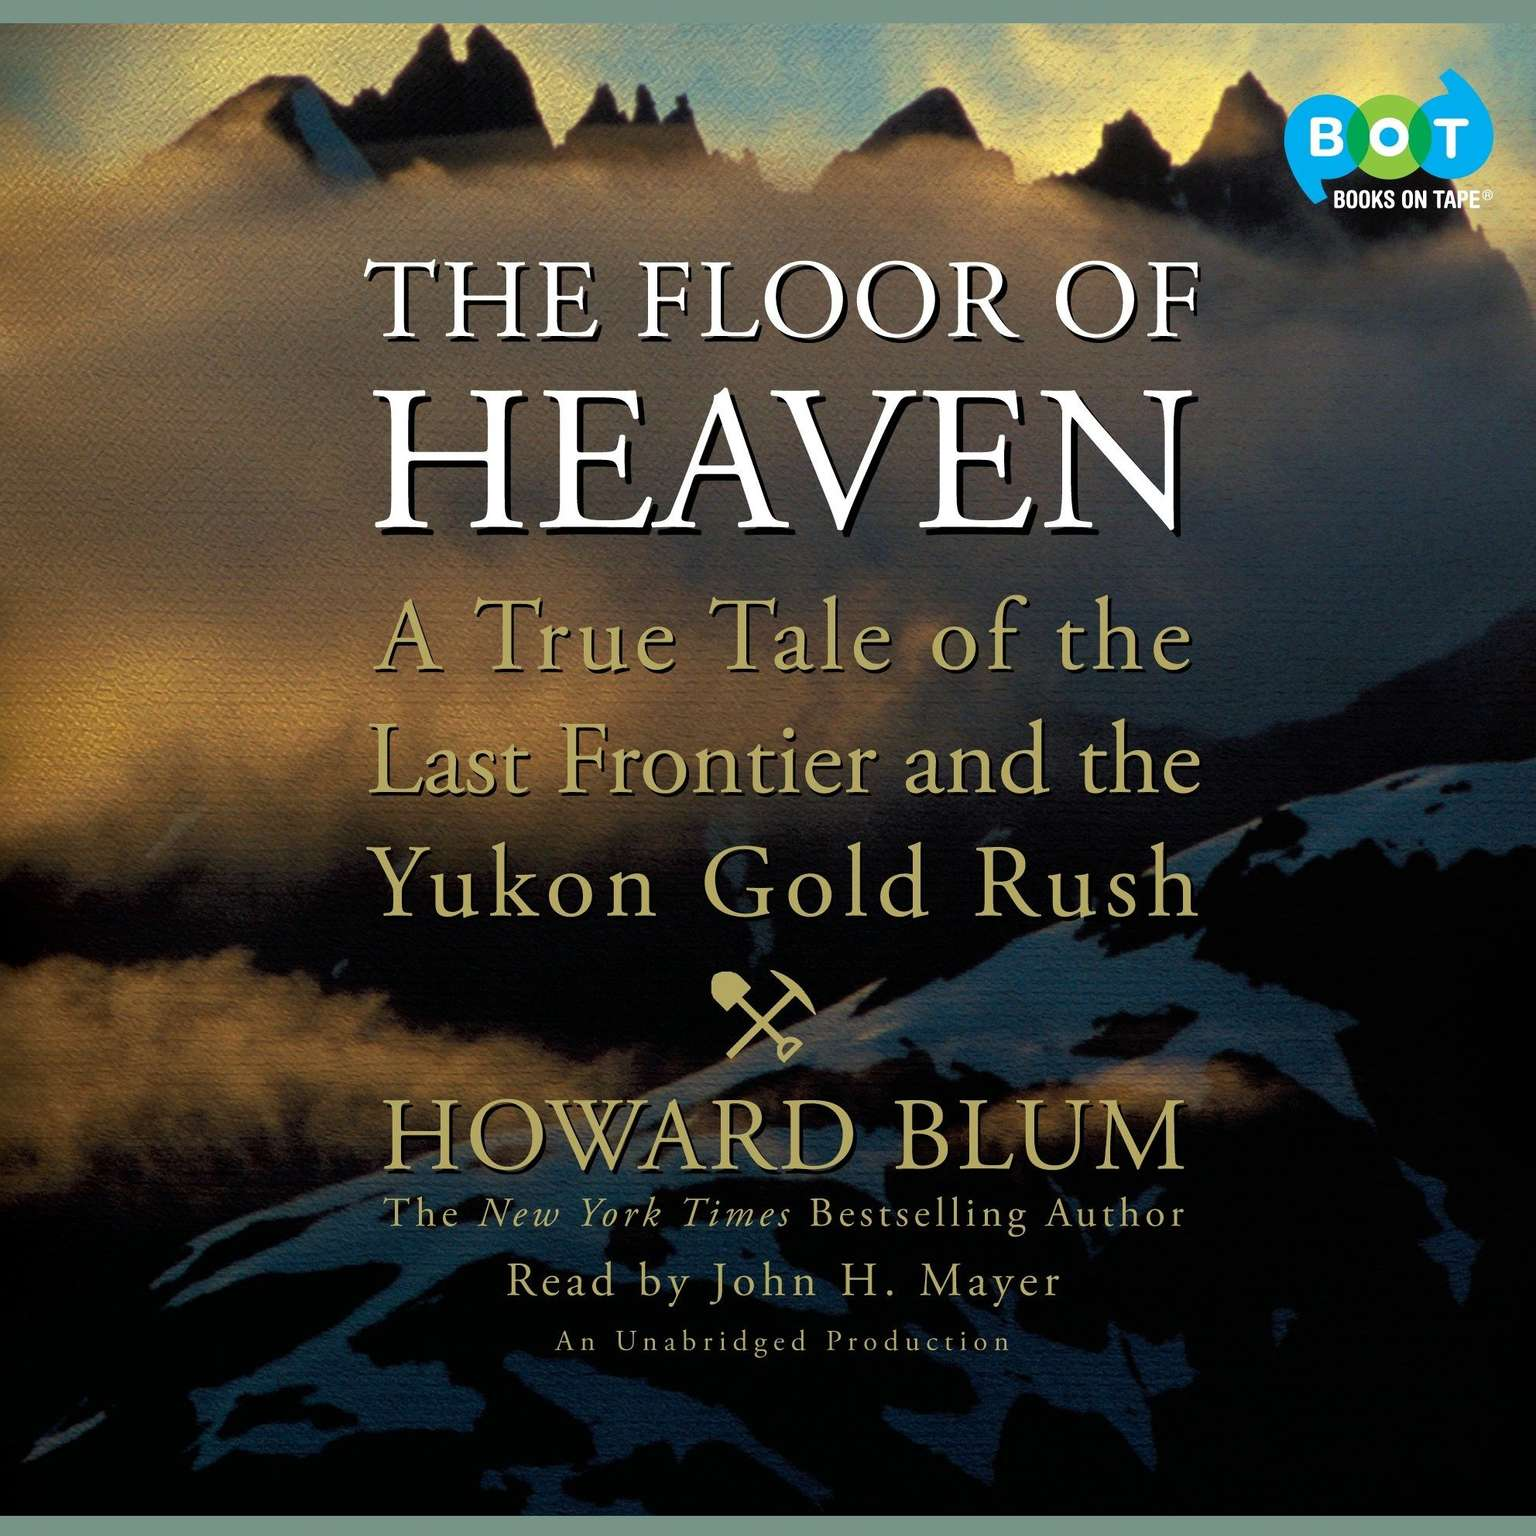 The Floor of Heaven: A True Tale of the Last Frontier and the Yukon Gold